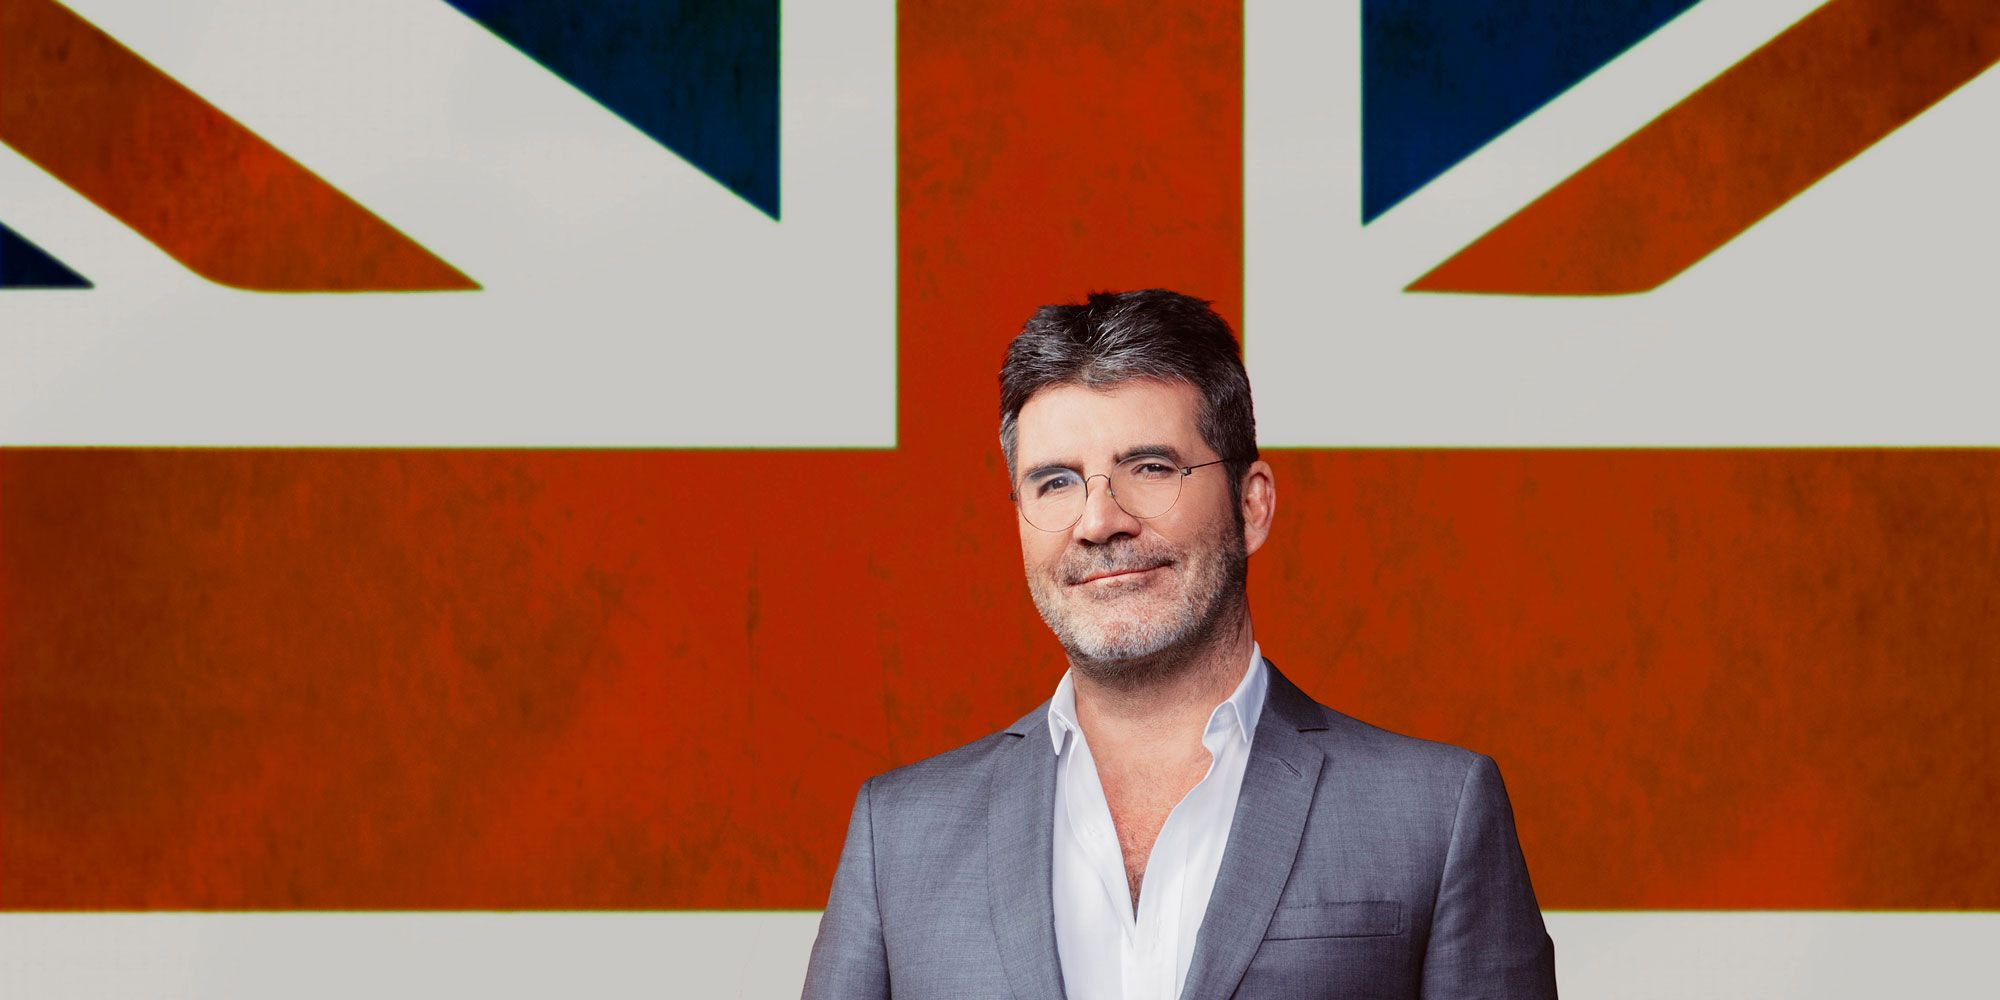 Simon Cowell set to give Britain's Got Talent teen £78k for life-changing spinal operation even if she doesn't win